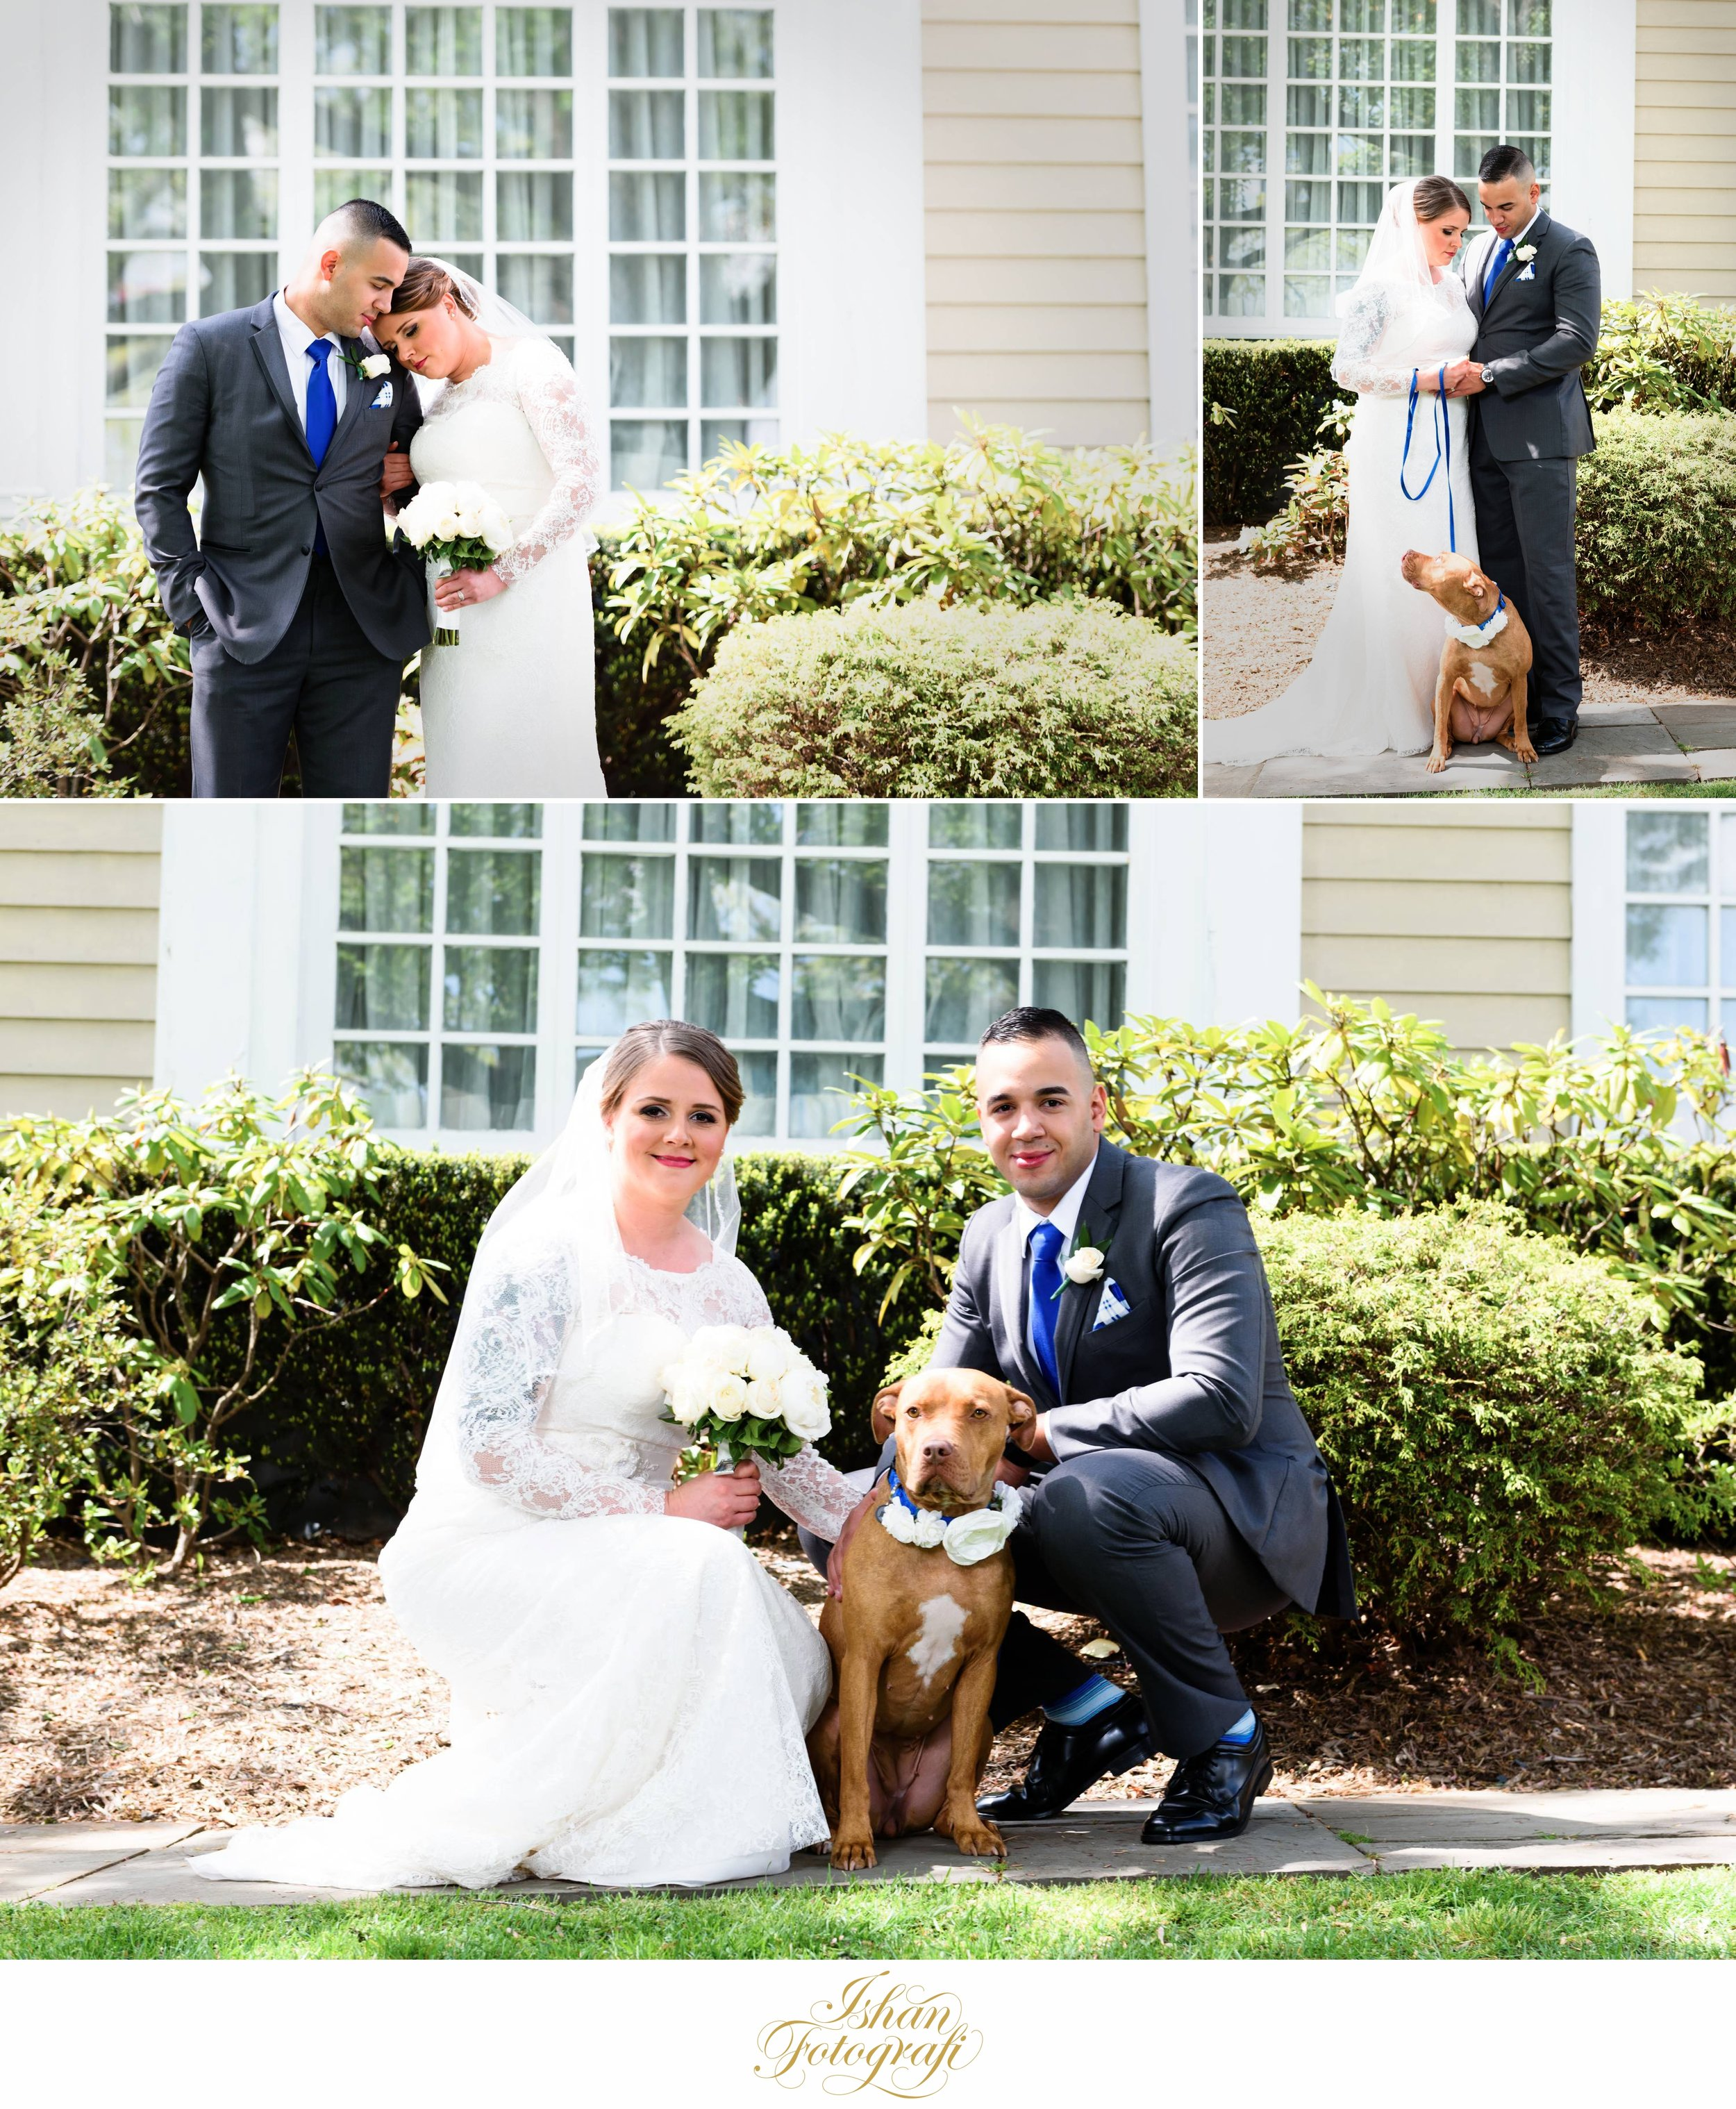 Amanda & Jeffrey love their dog! They flew her from California which is where our bride & groom reside.How cute!